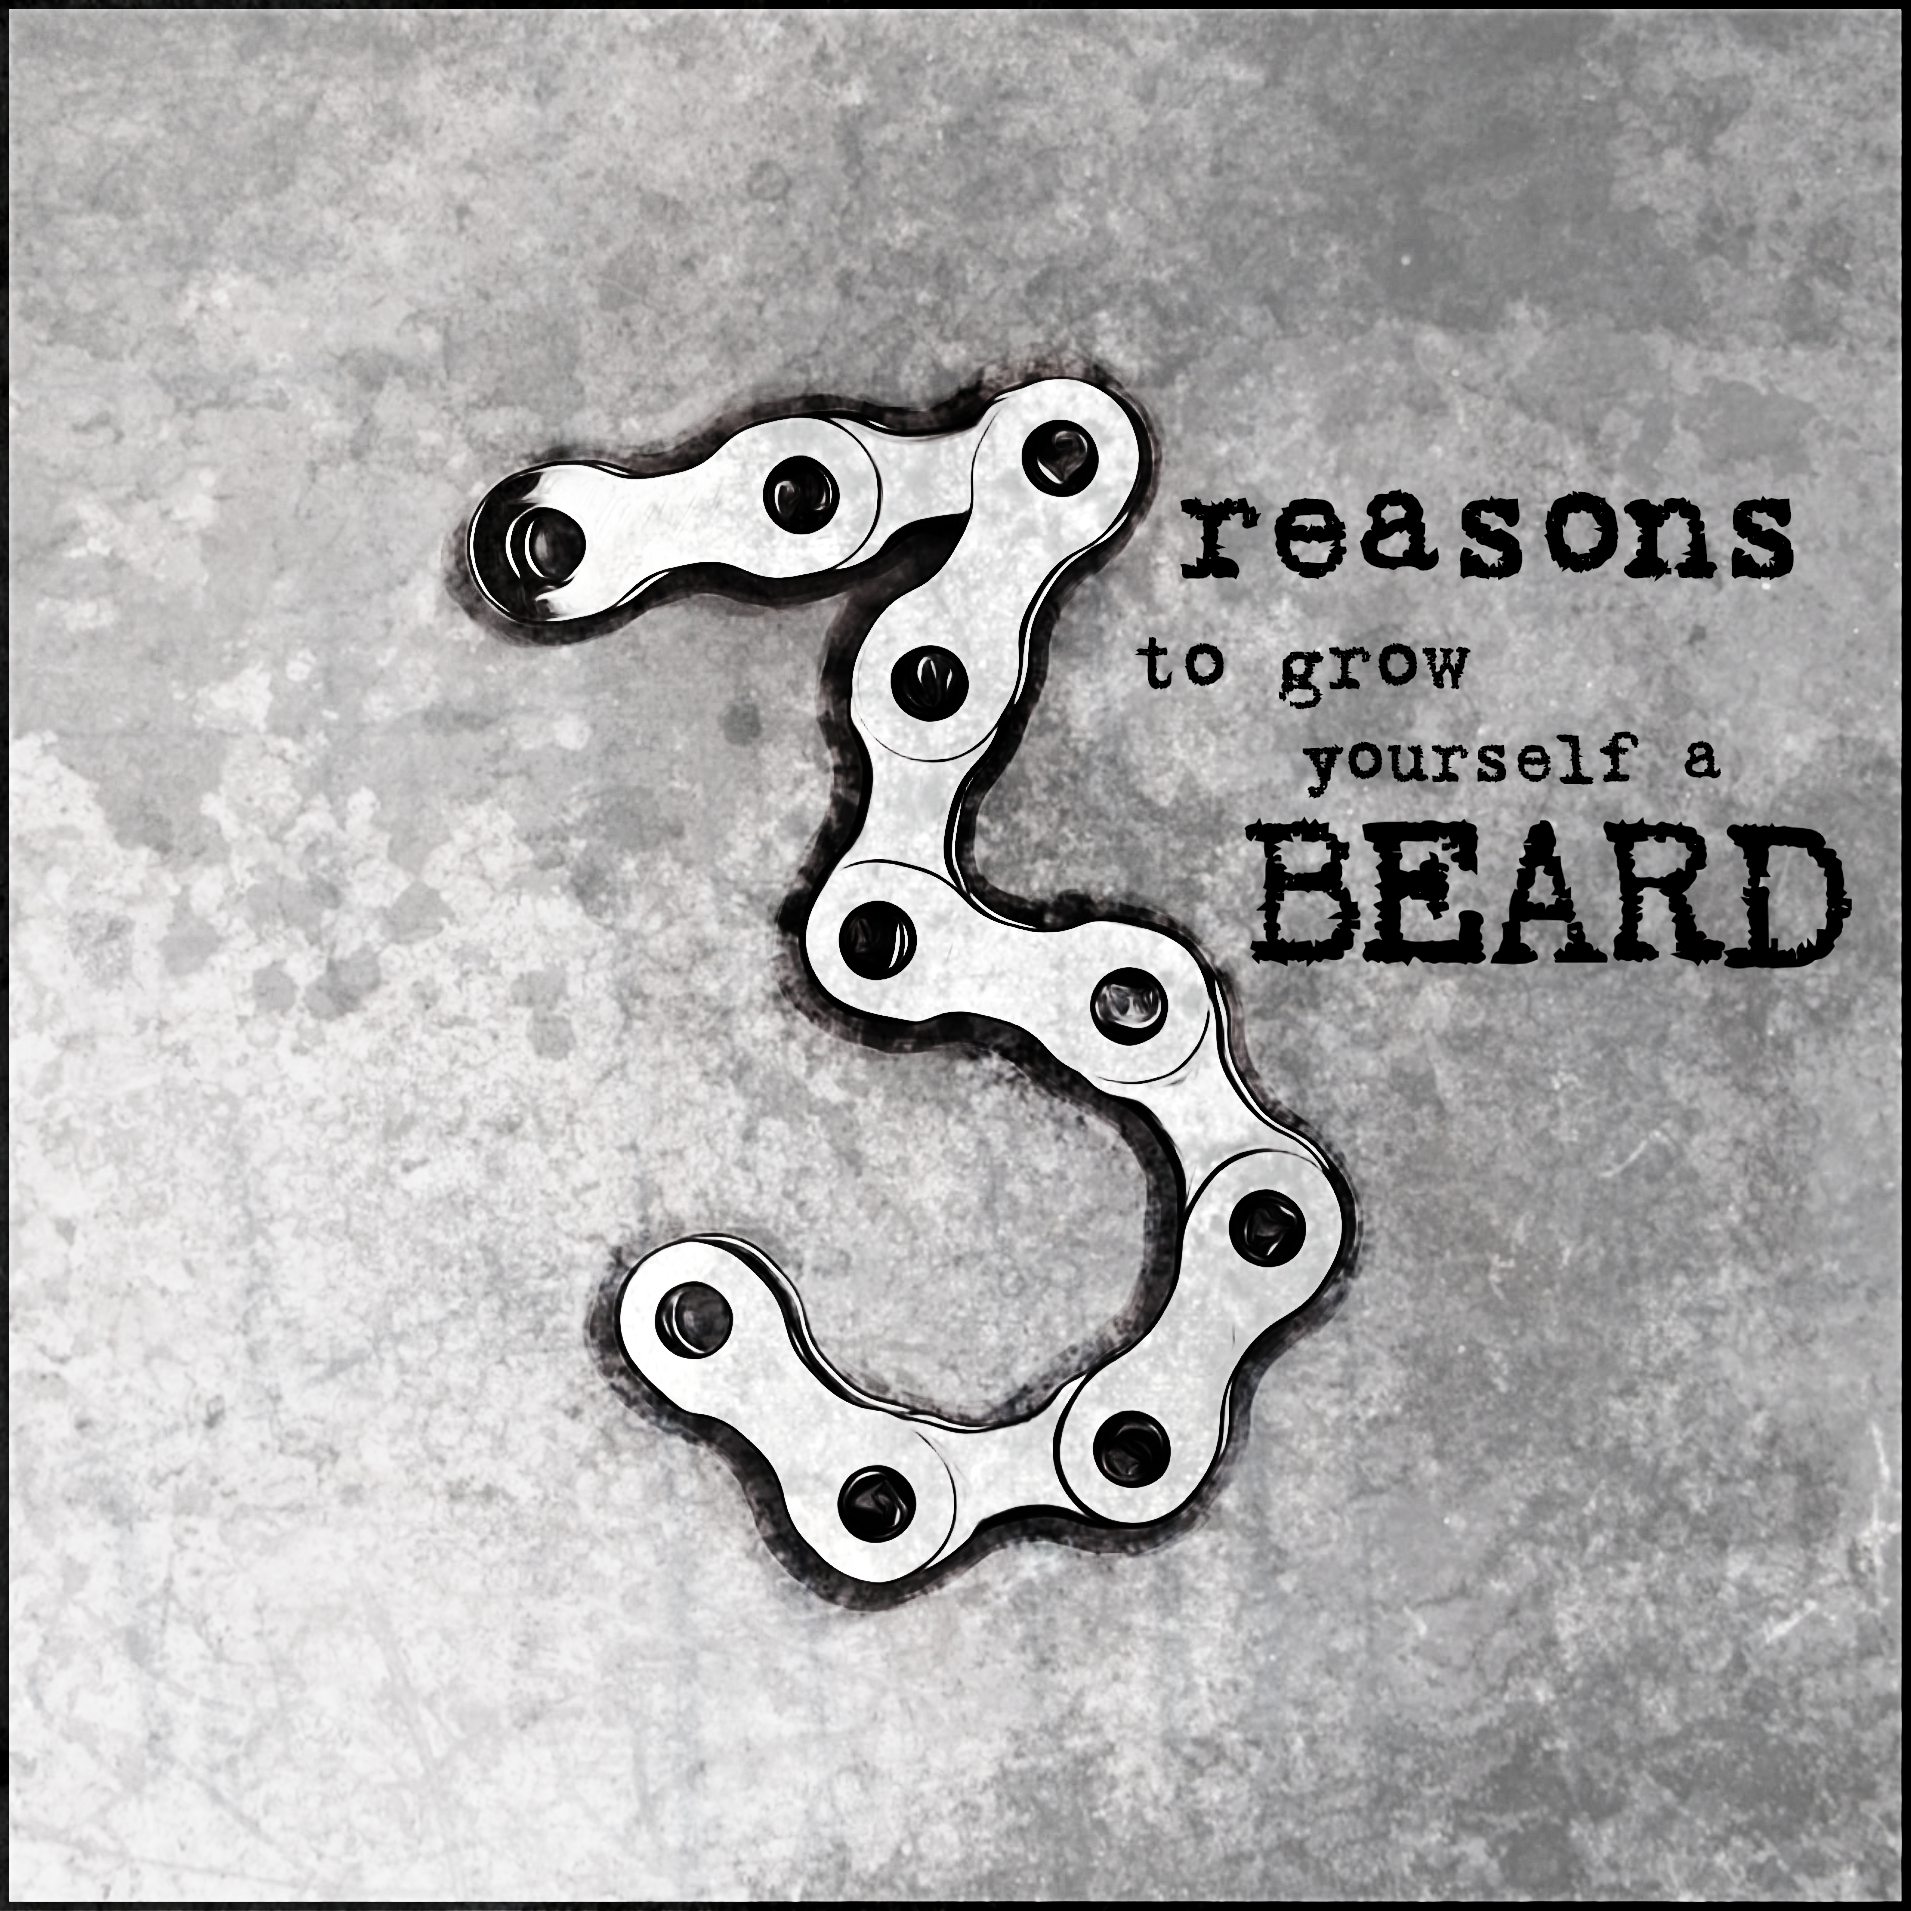 3 GREAT REASONS TO GROW A BEARD